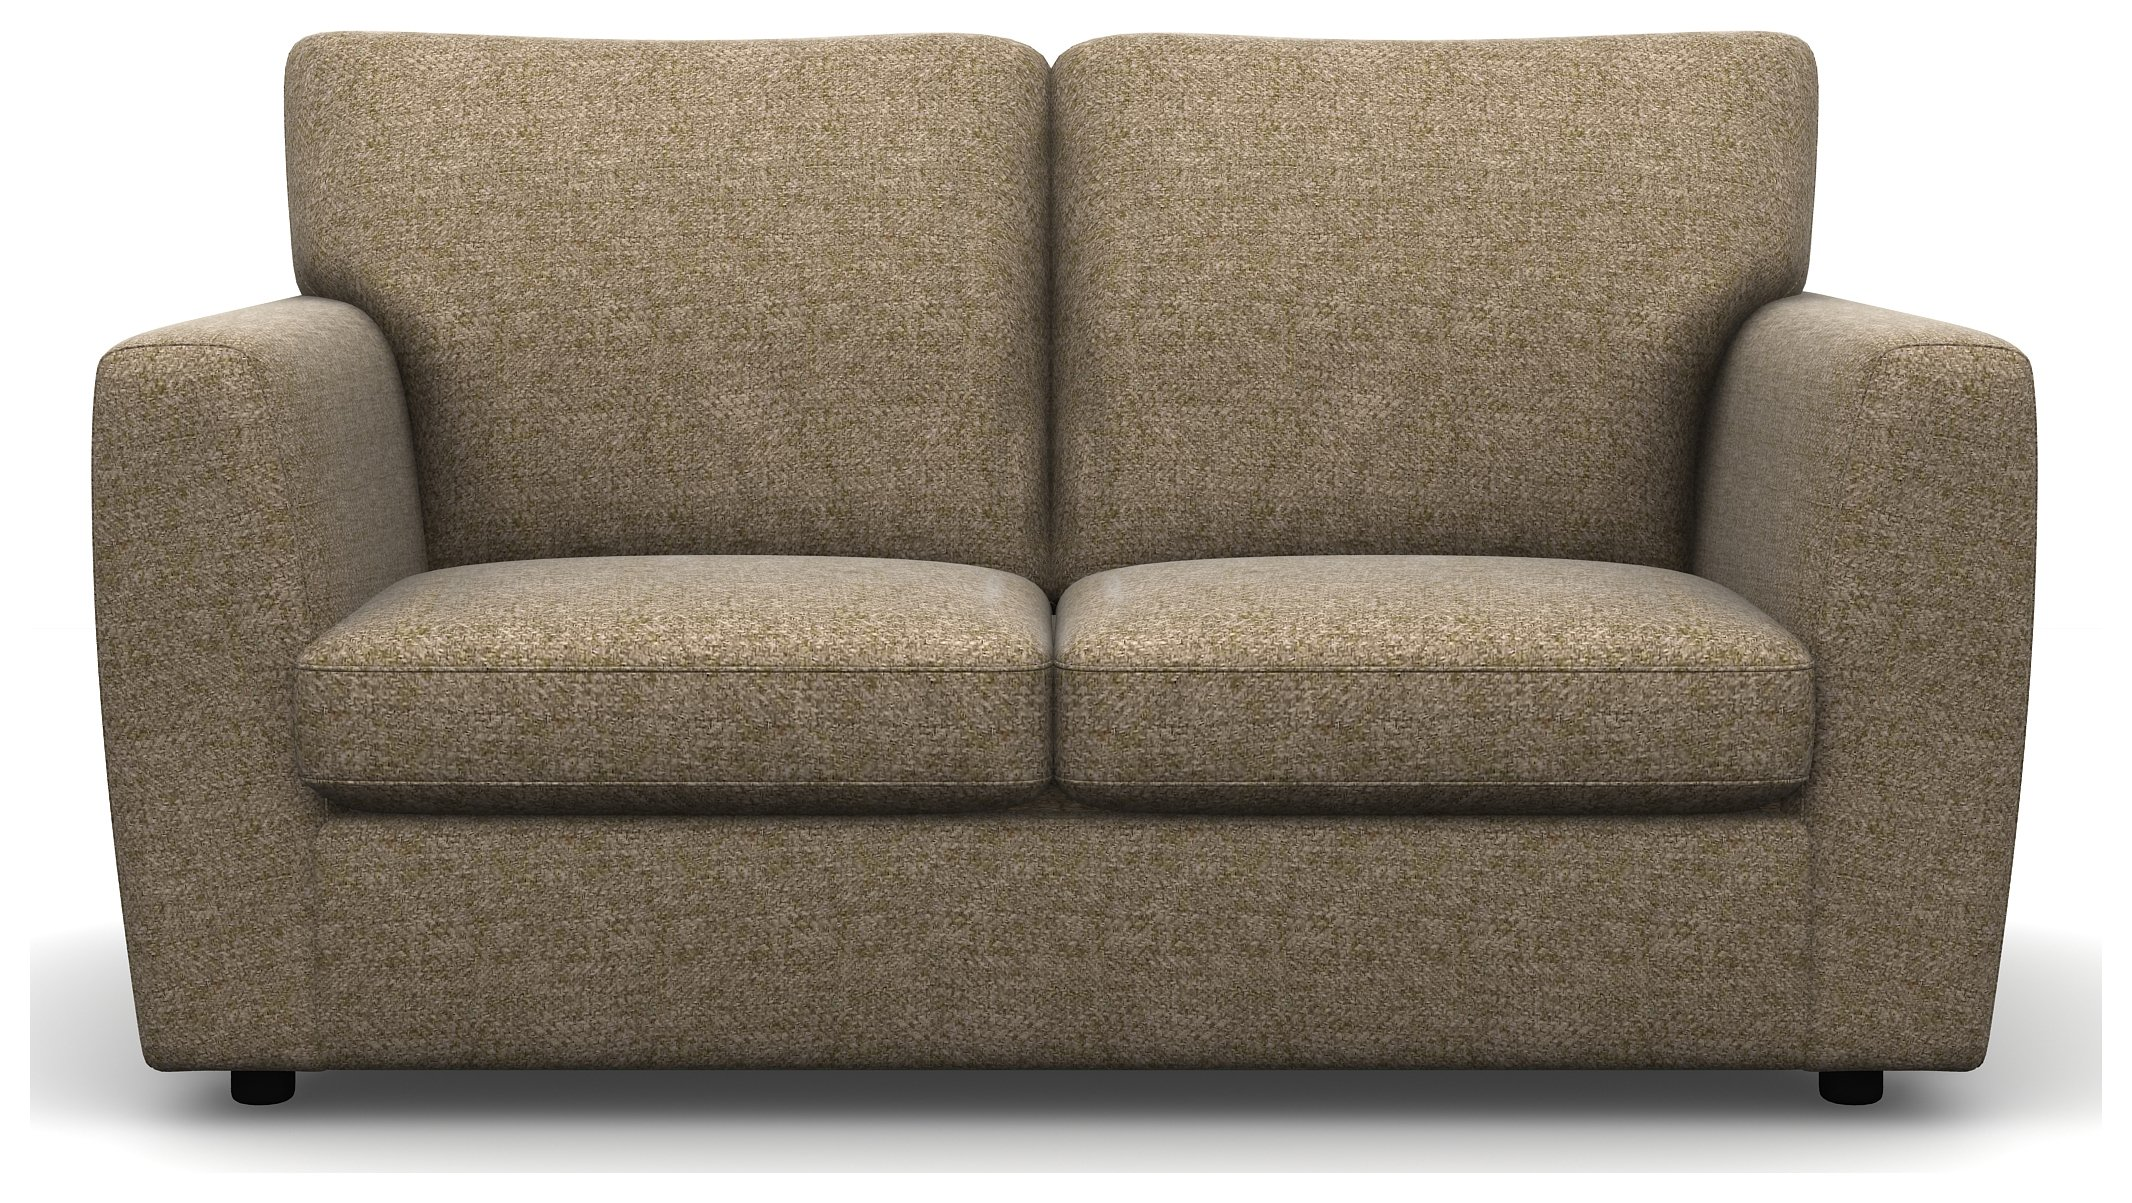 Heart of House Lucas 2 Seater Tweed Fabric Sofa - Beige.